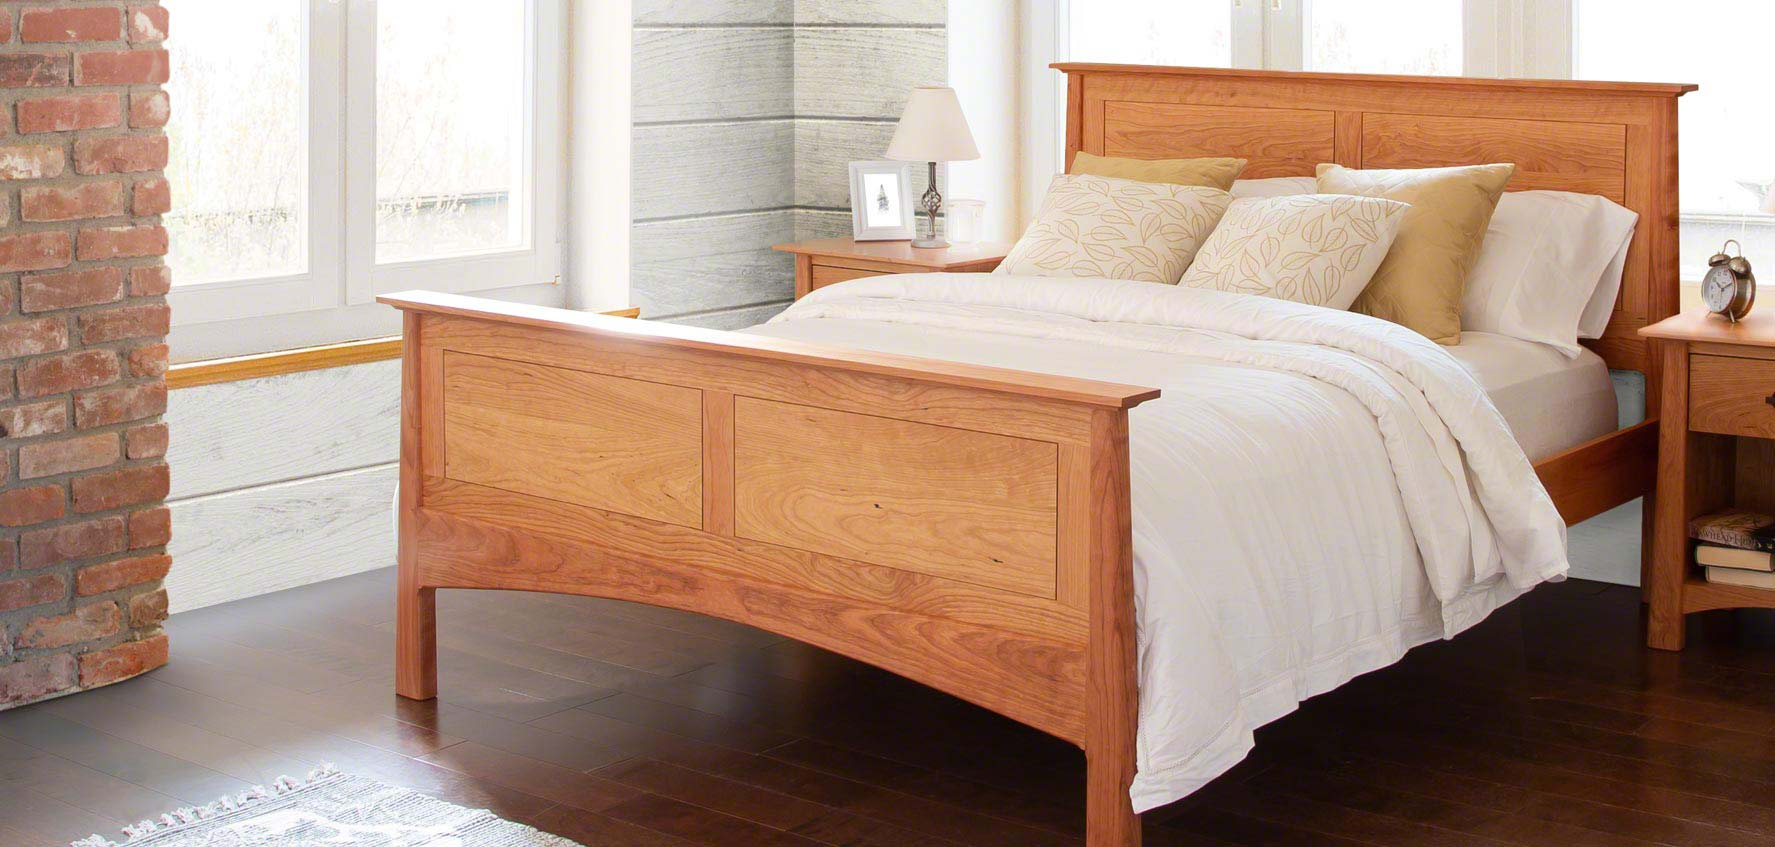 Beds And Beds Handcrafted Wood Beds Vermont Woods Studios